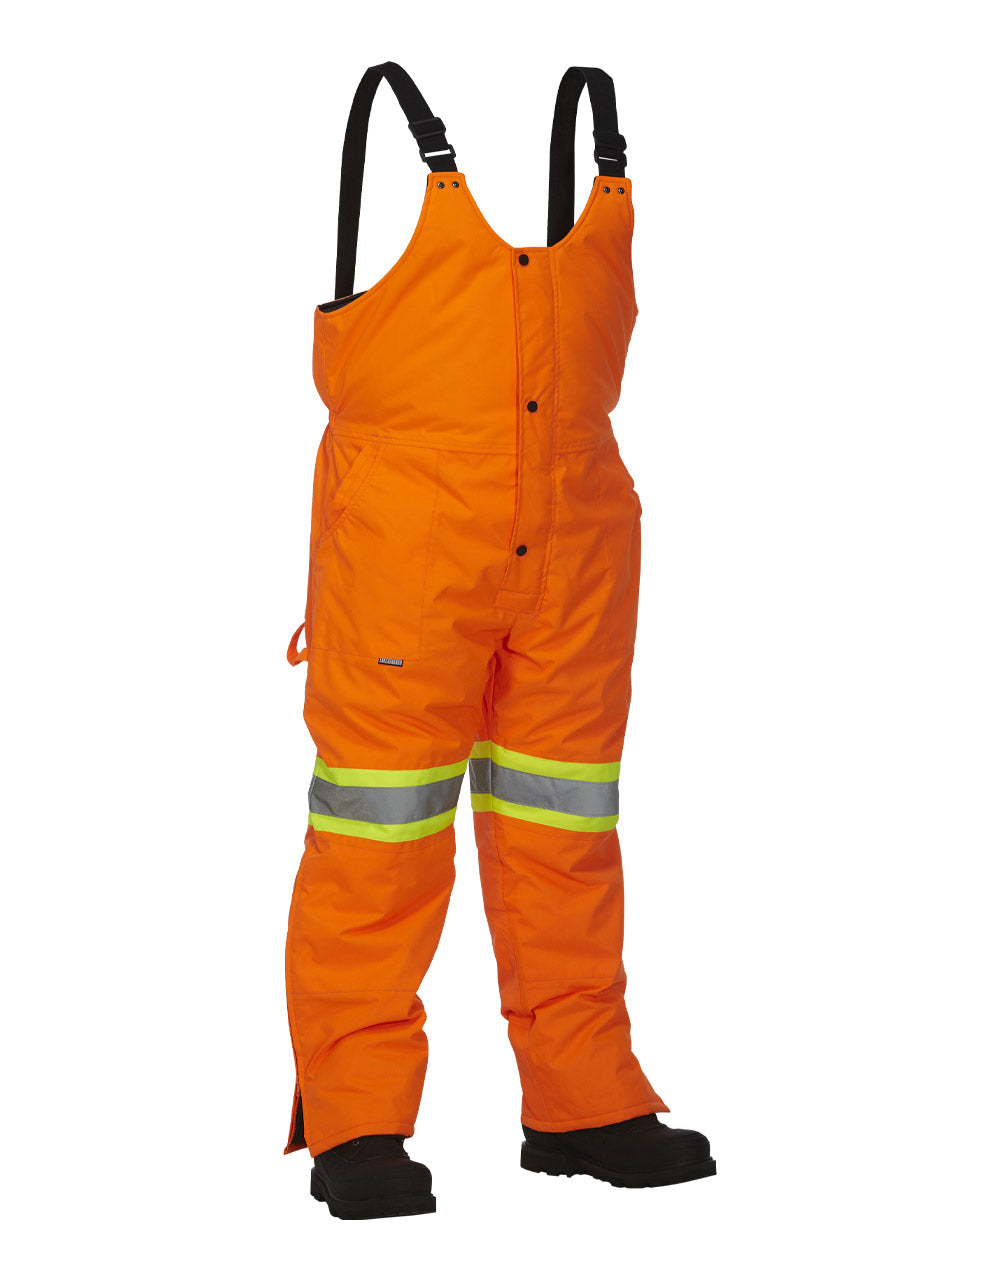 Lined Winter Safety Overall